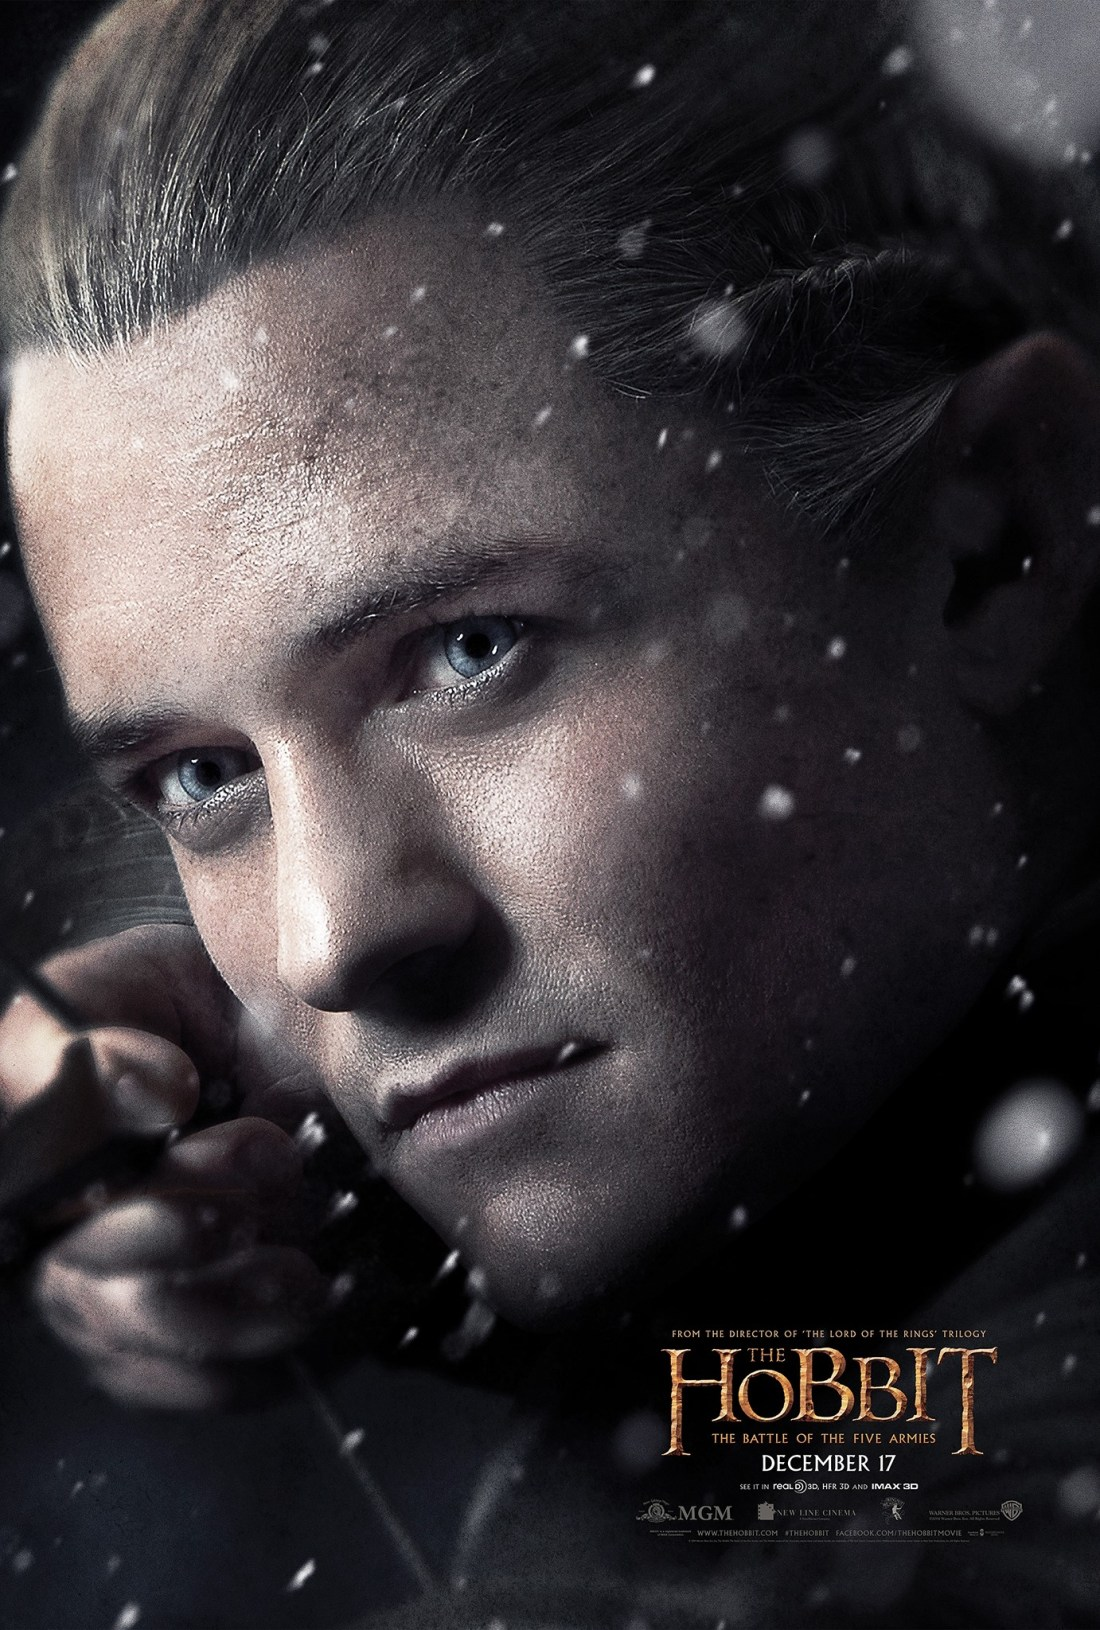 Legolas - The Hobbit: The Battle of the Five Armies Poster